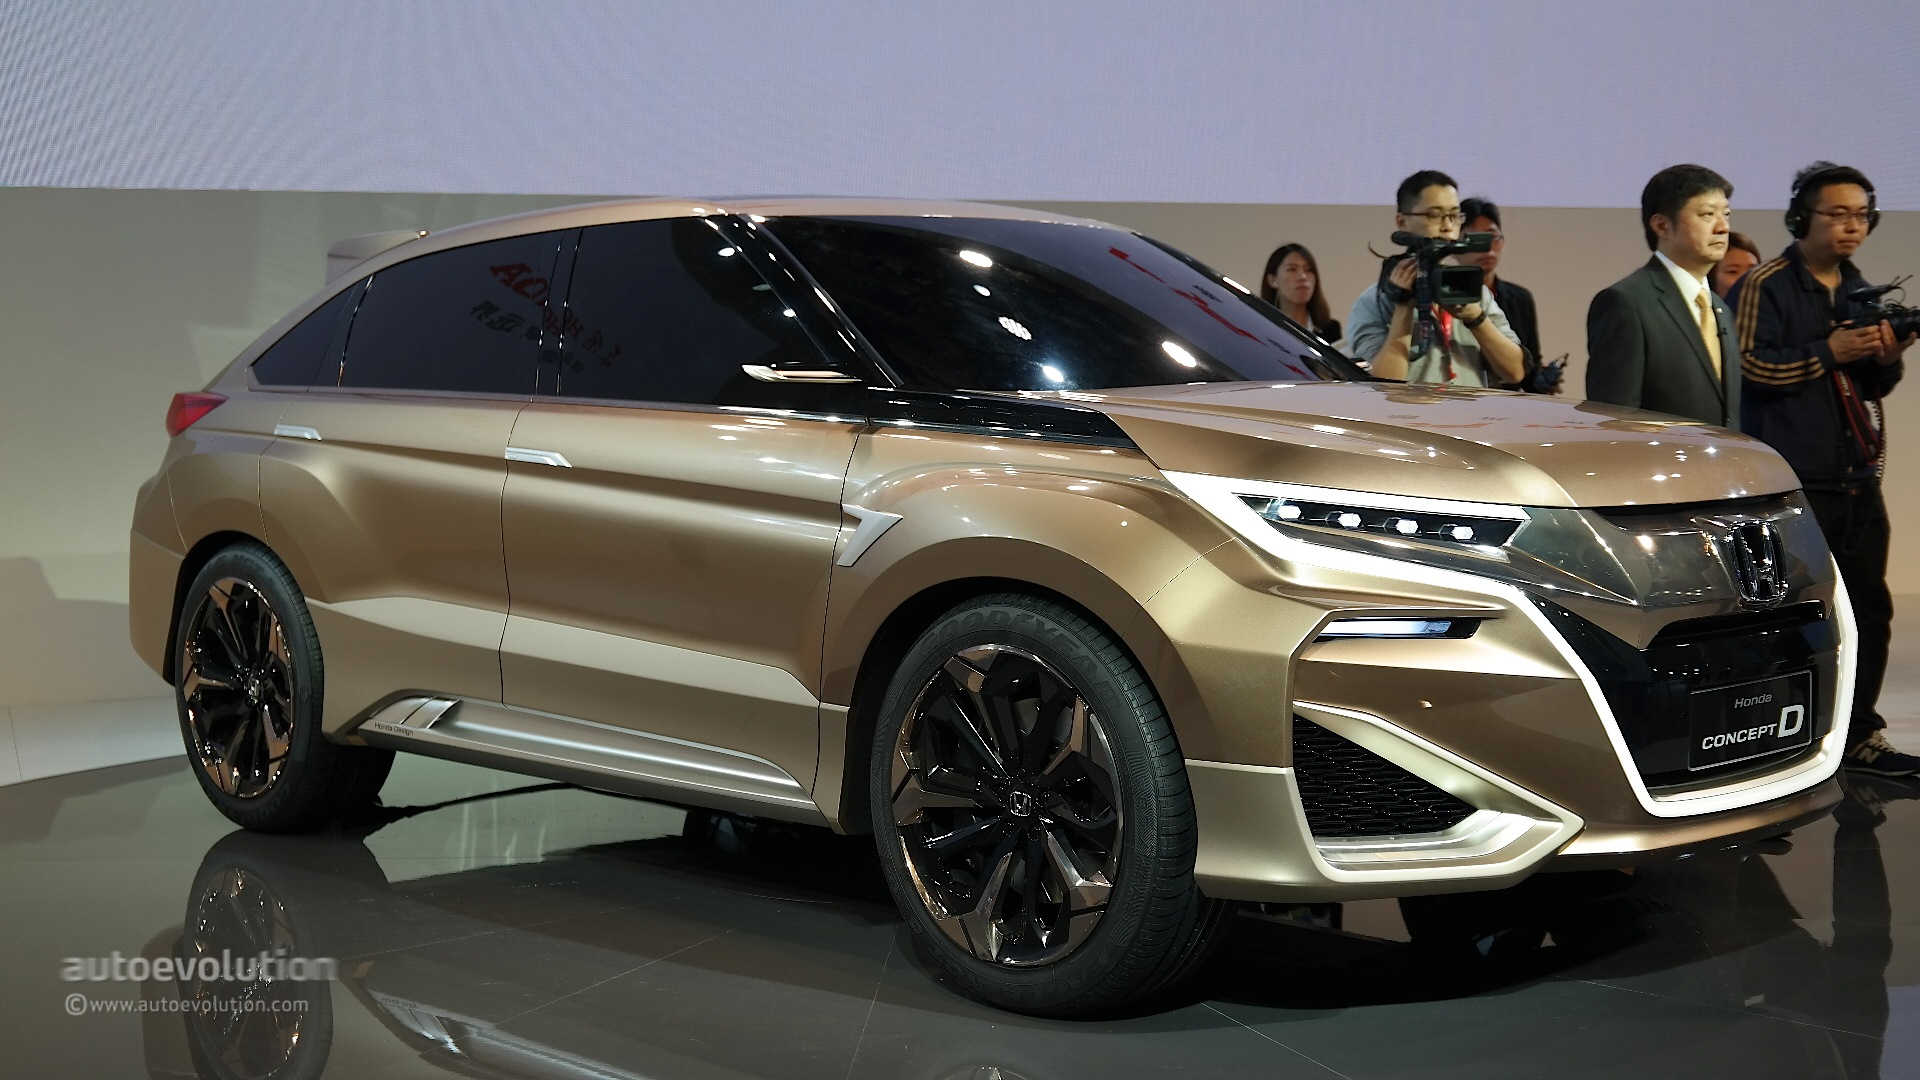 Dongfeng Honda Concept D Previews China Only Crossover At